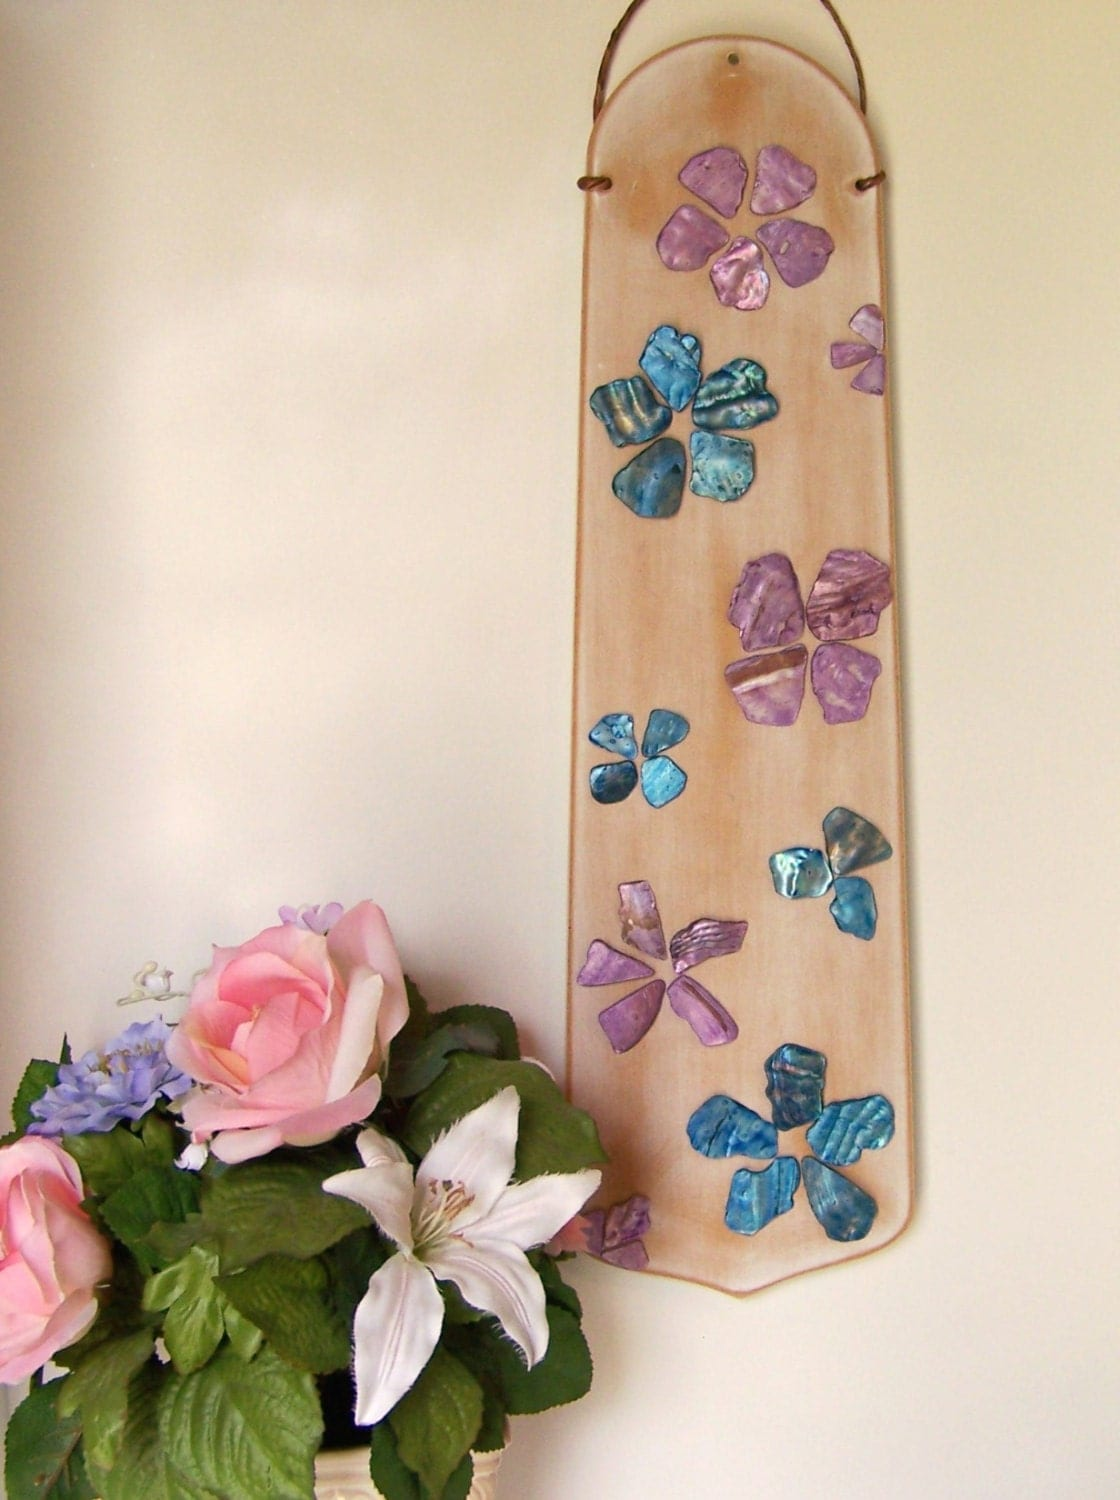 Repurposed ceiling fan blade wall art upcycled wall decor - Ventiladores techo infantiles ...